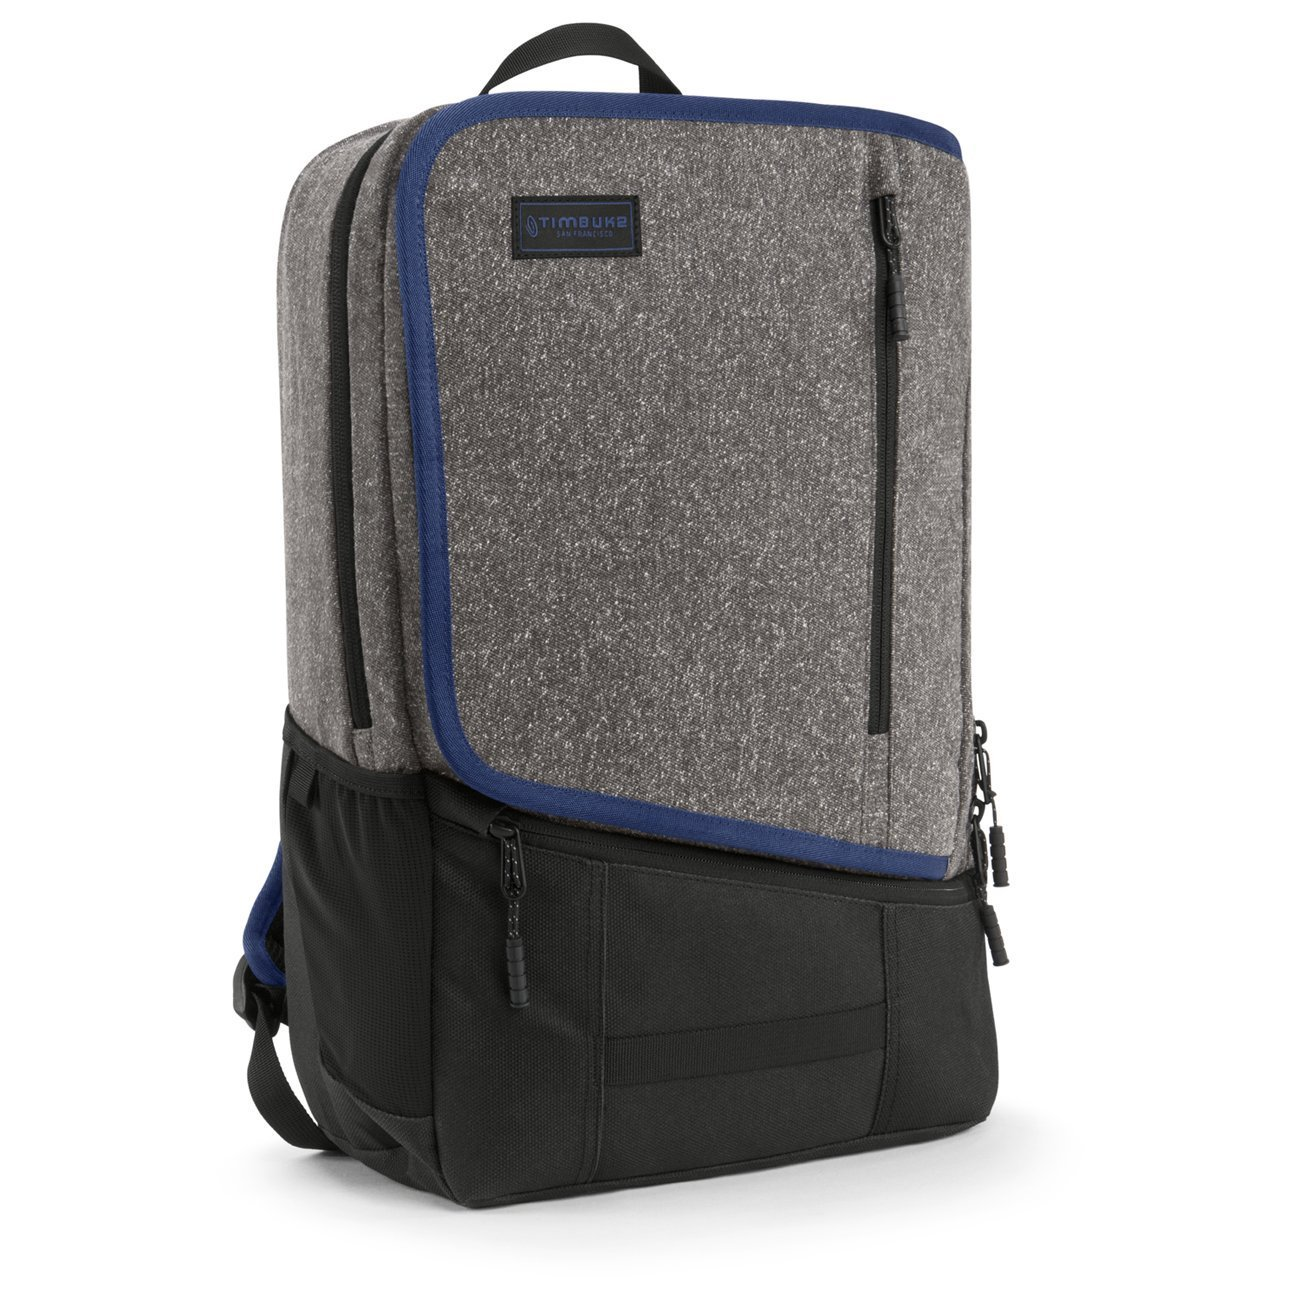 Best Commuter Backpack >> What is best commuter backpack? Top 5 reviews - Pool University